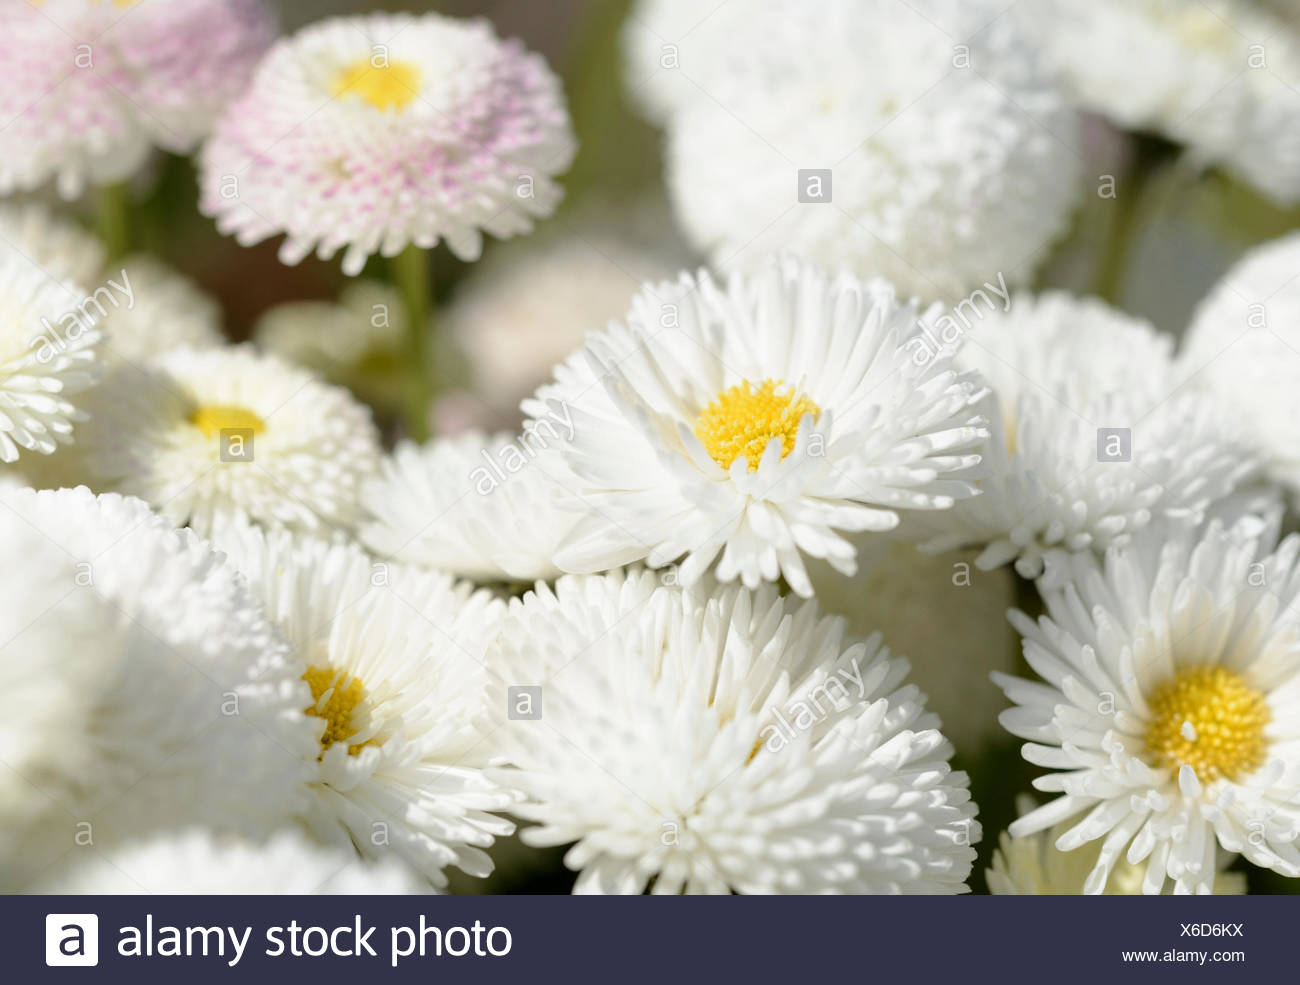 Daisy double daisy bellis perennis stock photos daisy double daisy daisy double daisy bellis perennis white flowers growing outdoor in a garden izmirmasajfo Image collections